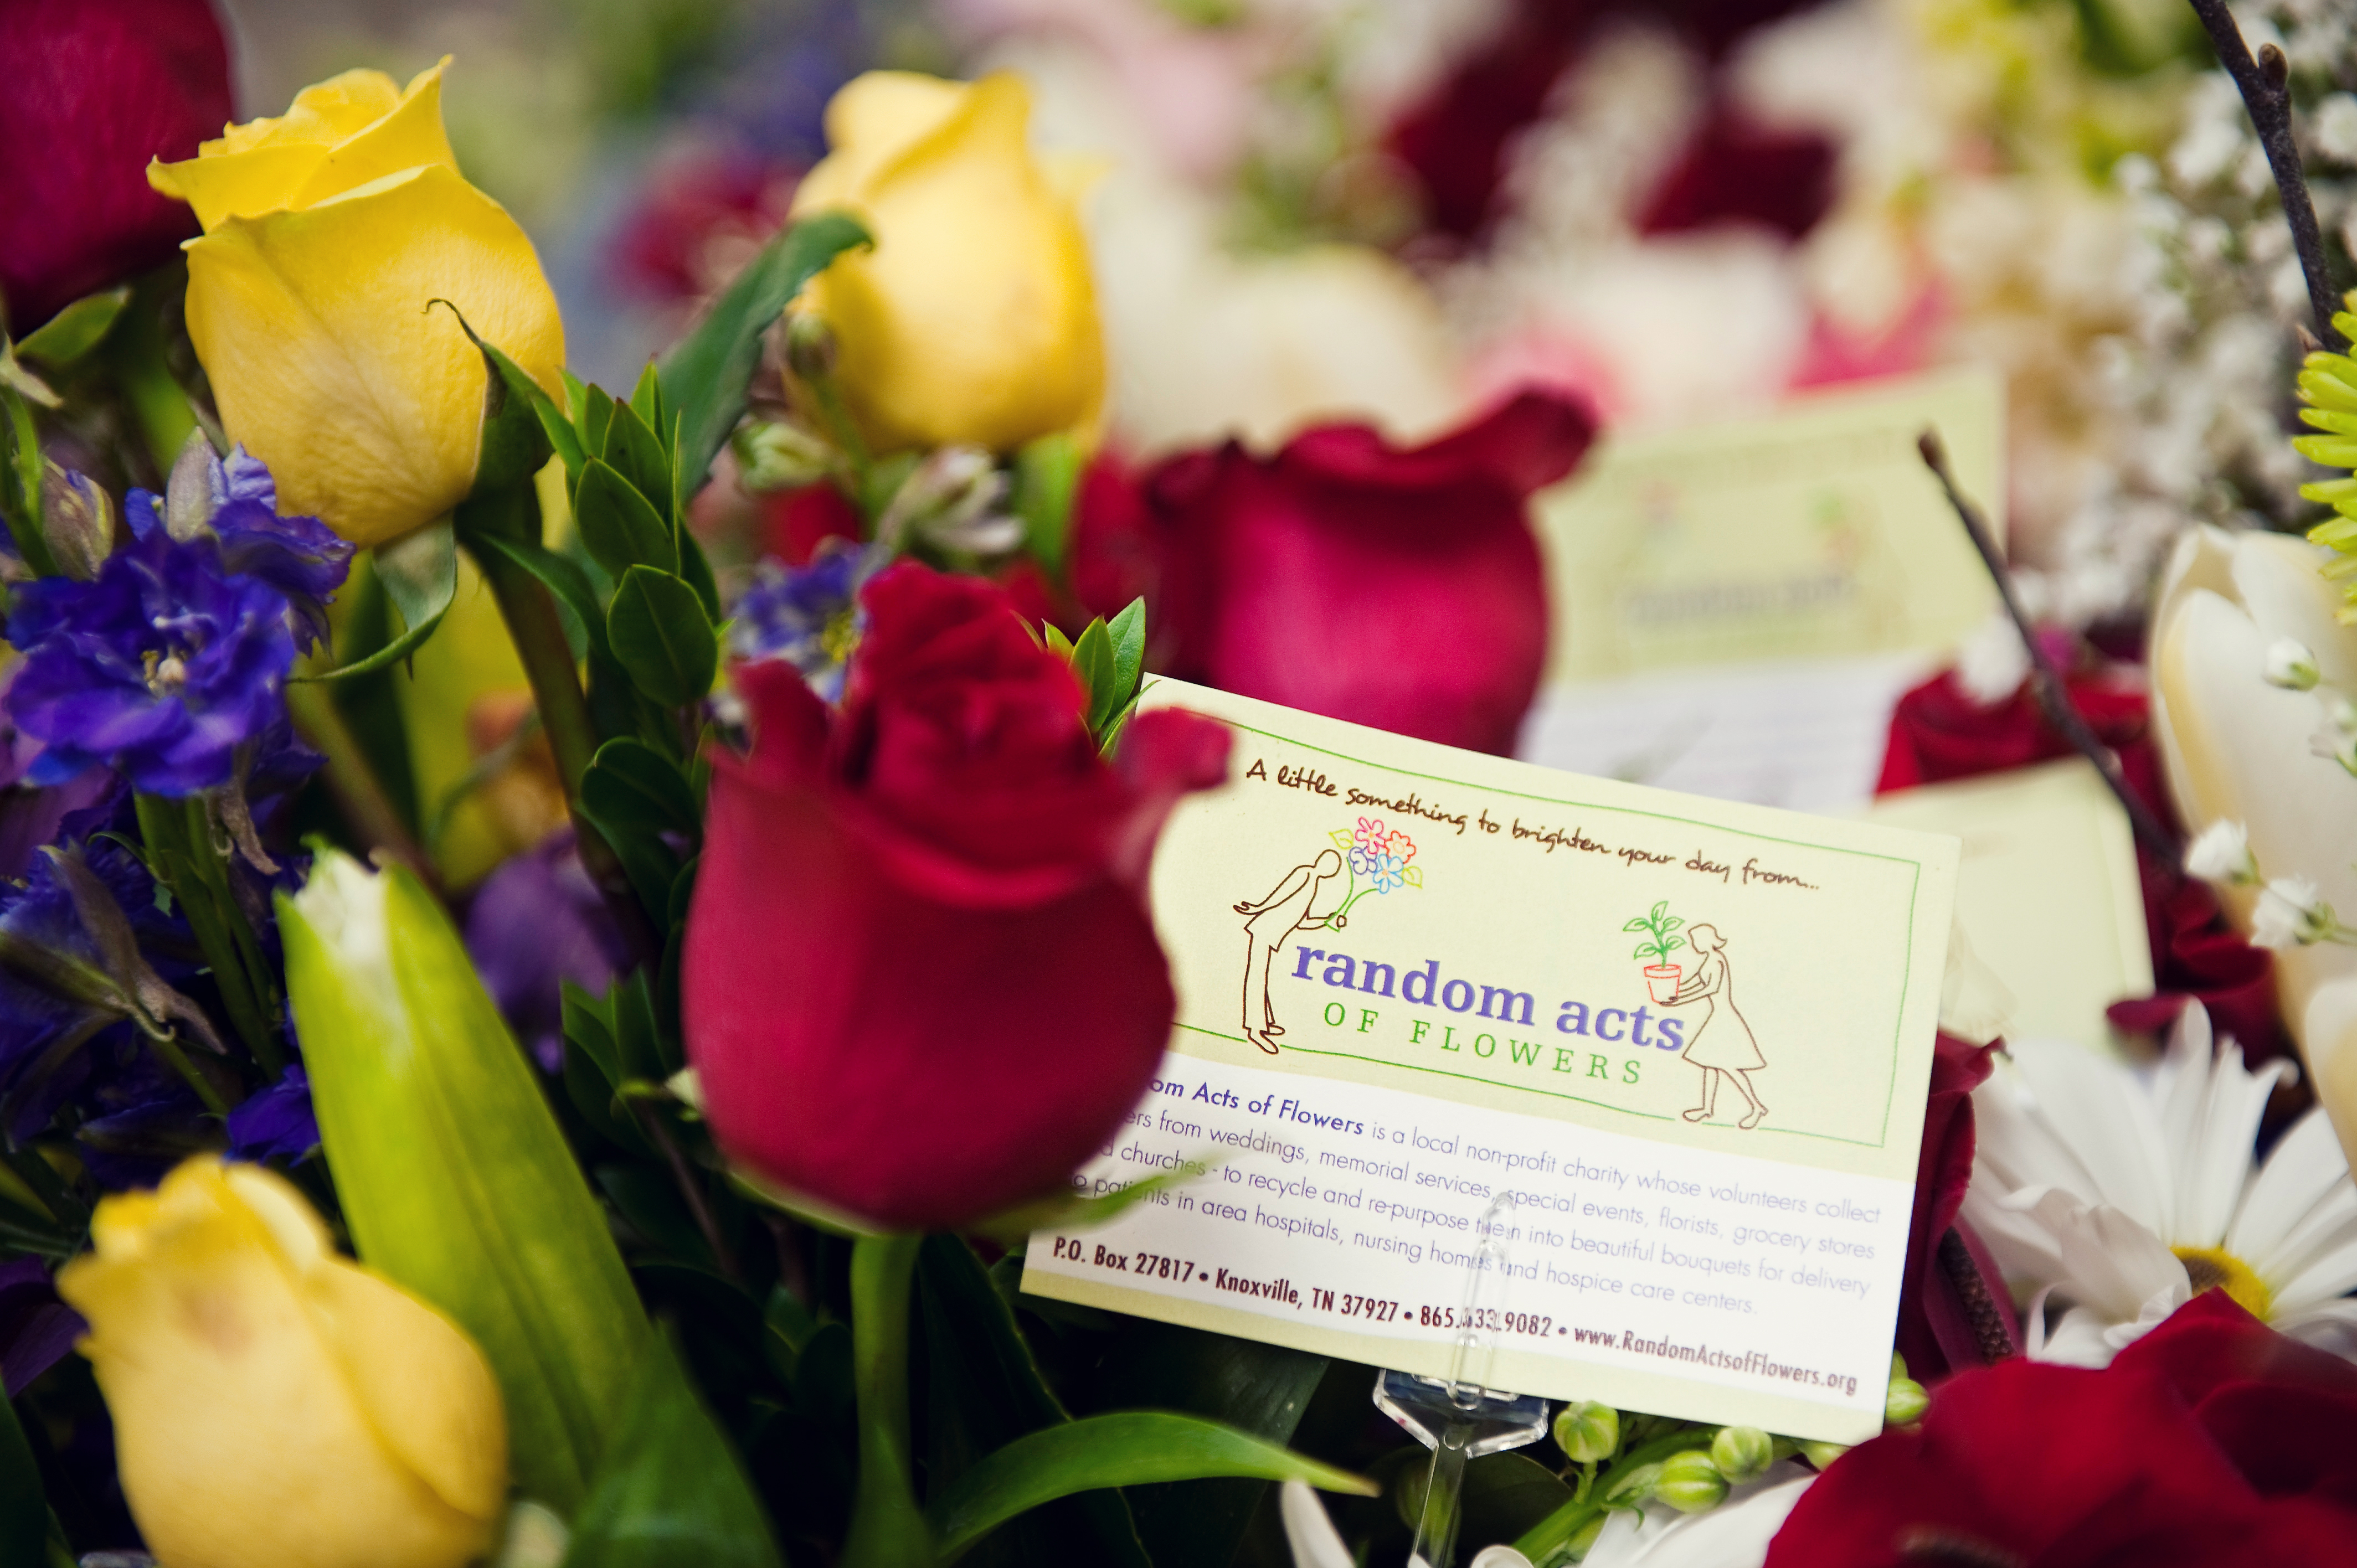 Founded in 2008 the Knoxville Tenn based nonprofit Random Acts of Flowers